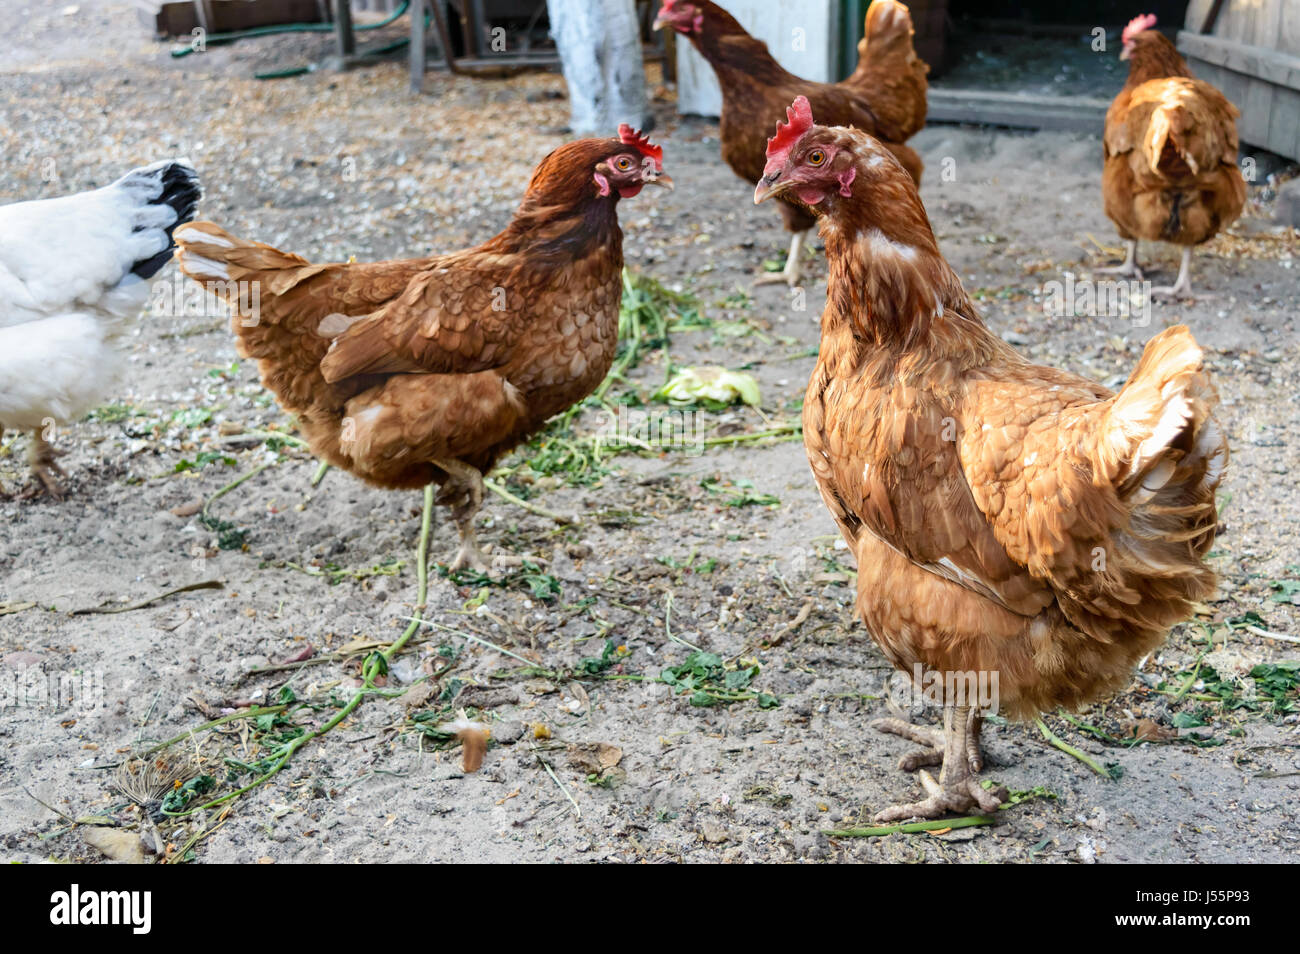 Red Rooster Coffee Garden Valley Lohmann Stock Photos And Lohmann Stock Images Alamy